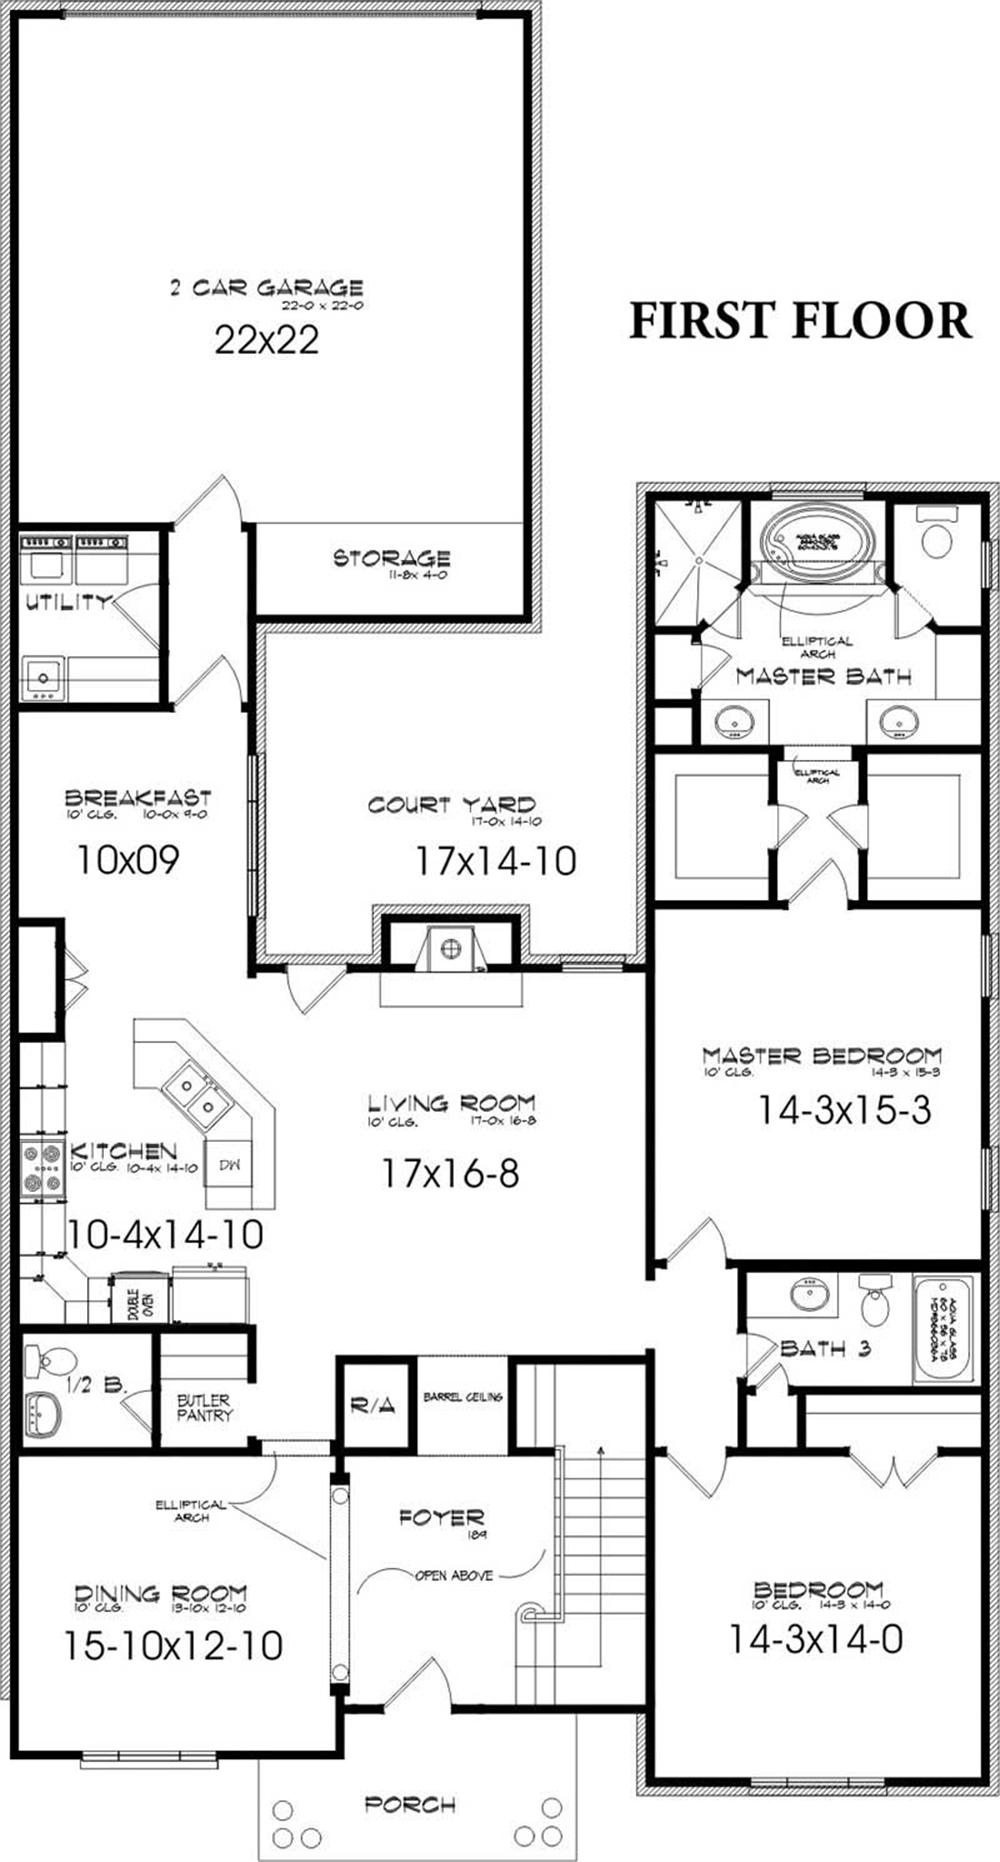 4 bedroom home plans with 3 car garage wiring diagram for Floor plans for my home